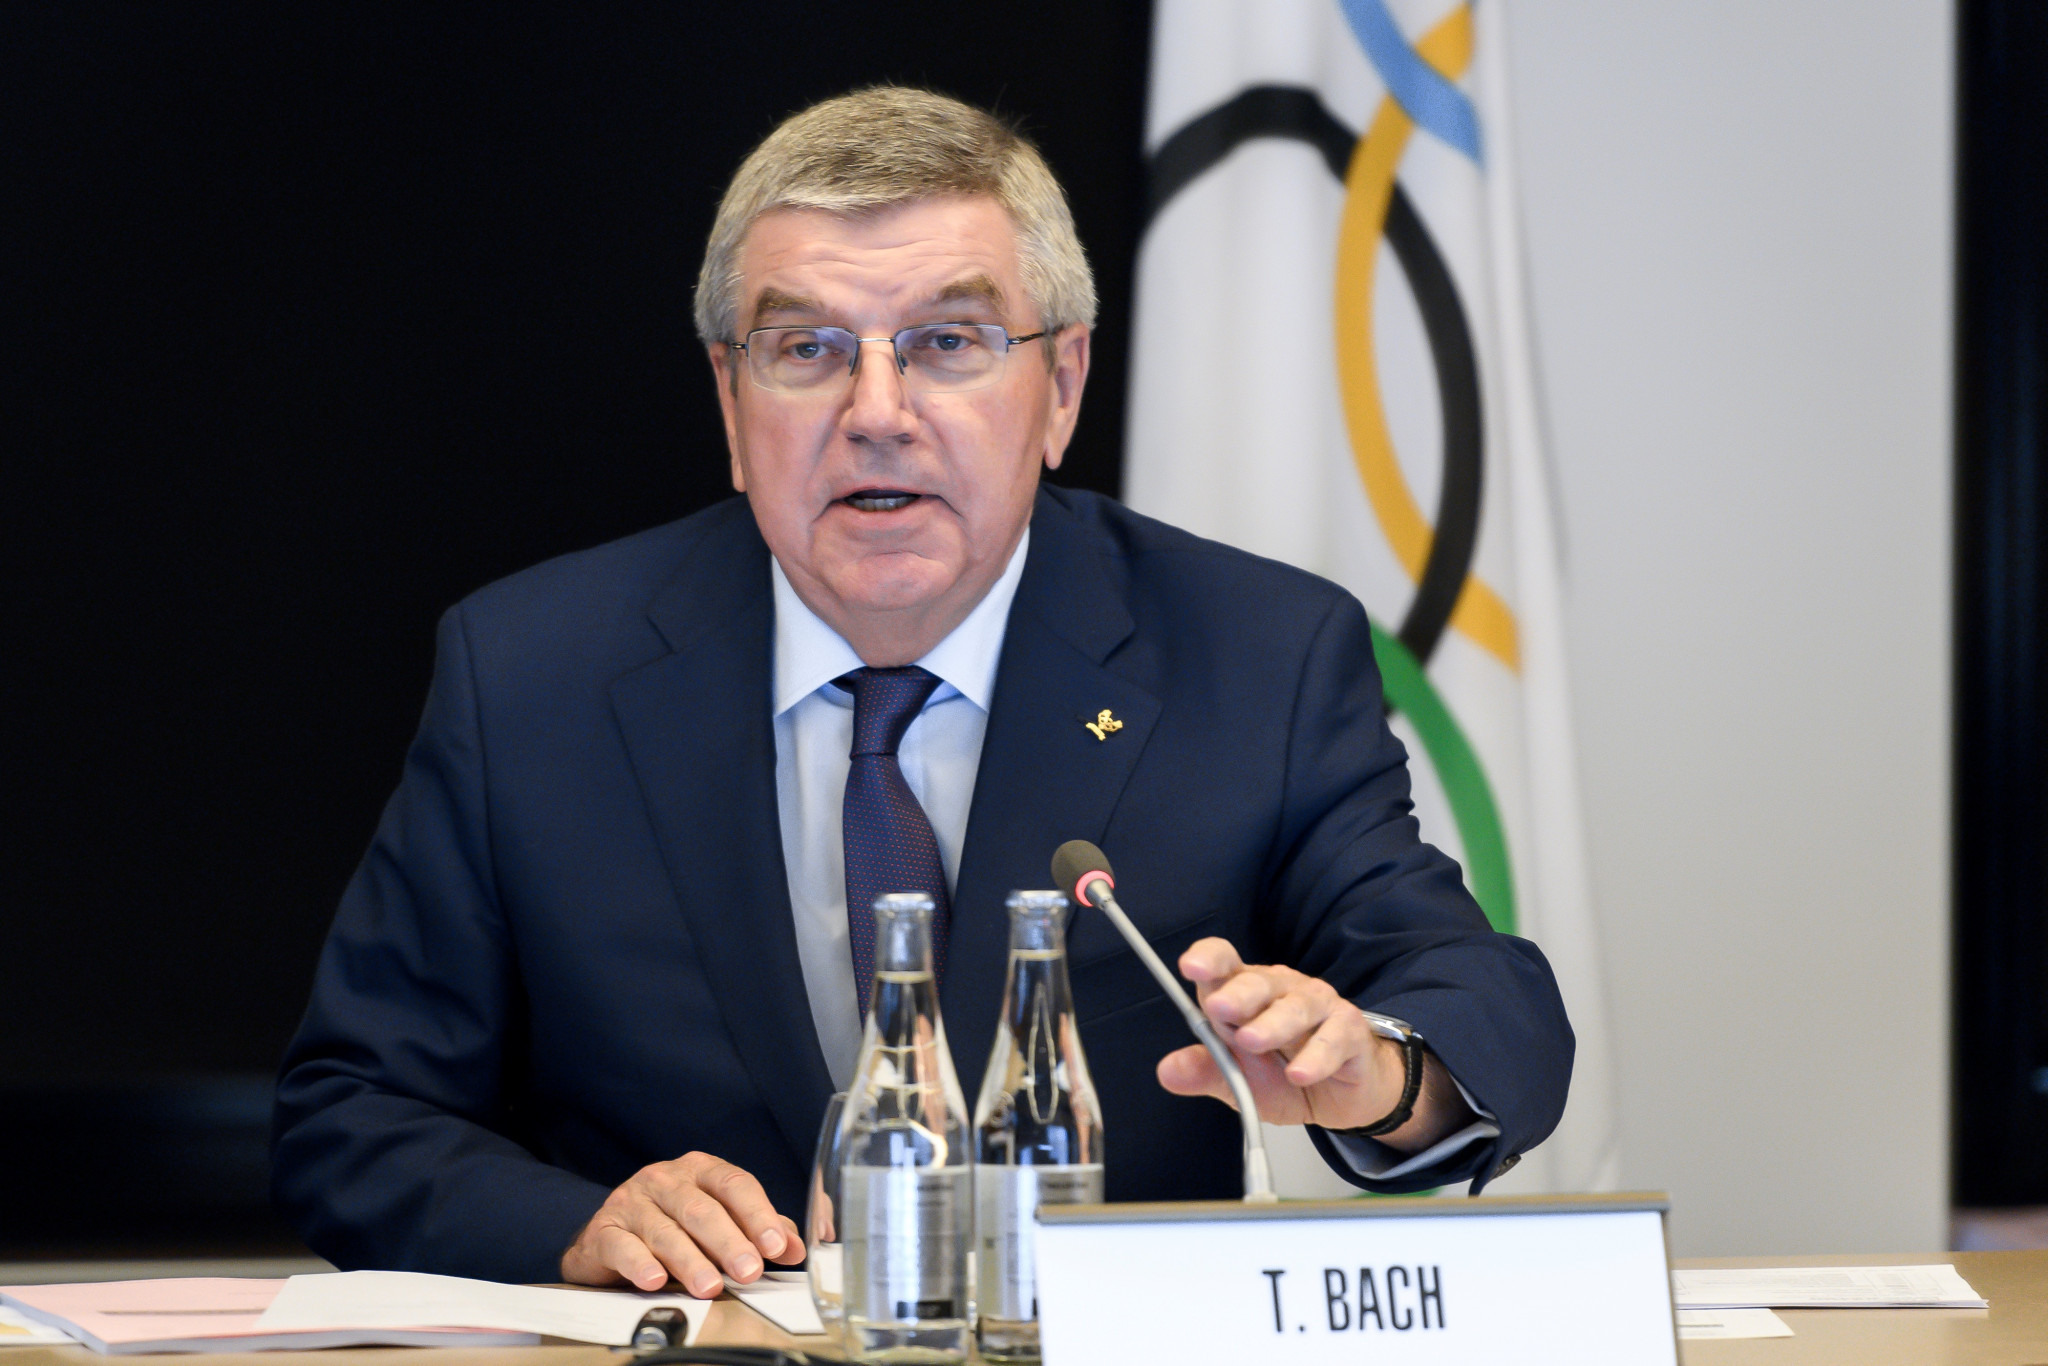 IOC President Thomas Bach said the proposals allowed for greater flexibility in the bidding process ©Getty Images